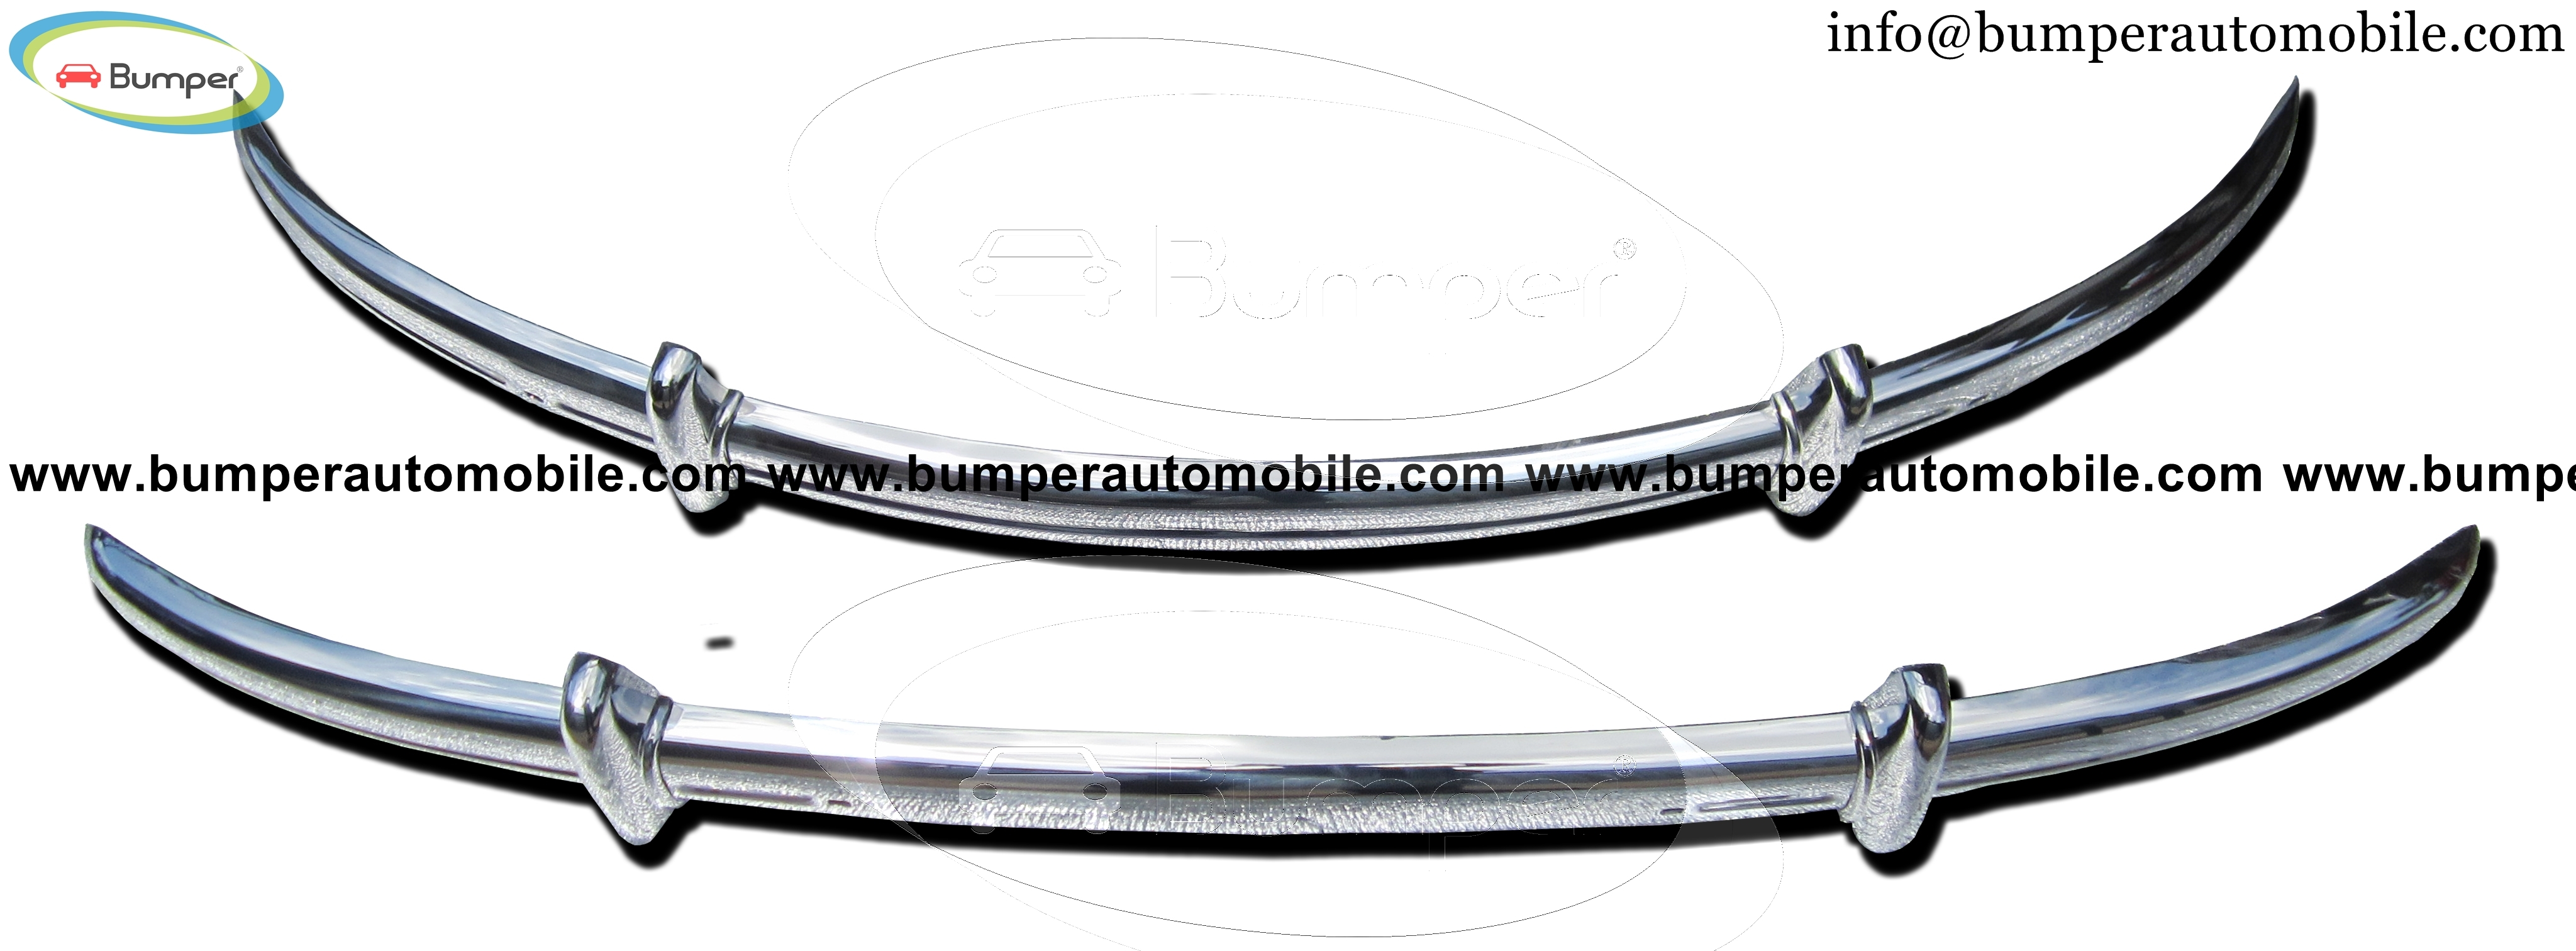 Stainless steel bumper type Volkswagen Beetle Split years (1930-1956)